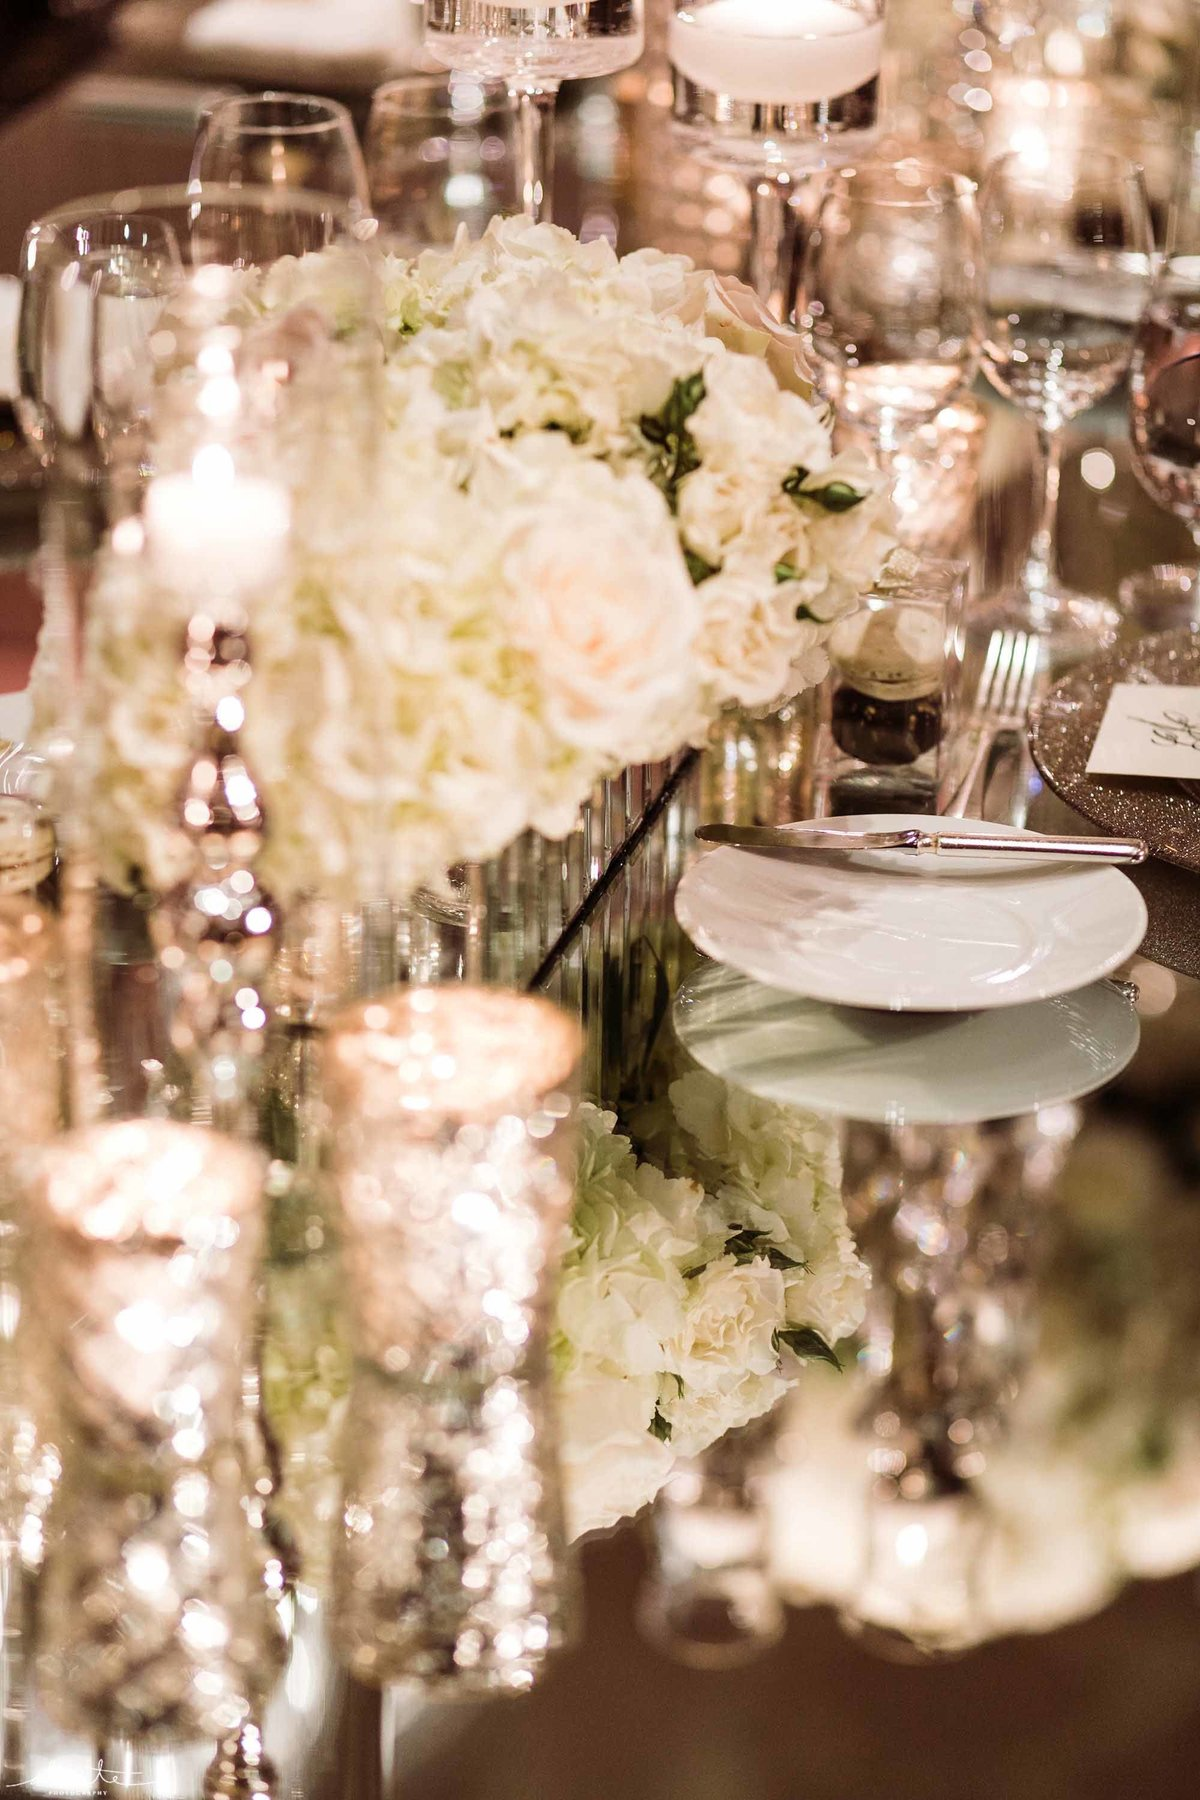 Glam mirrored table filled with white flowers and candles.